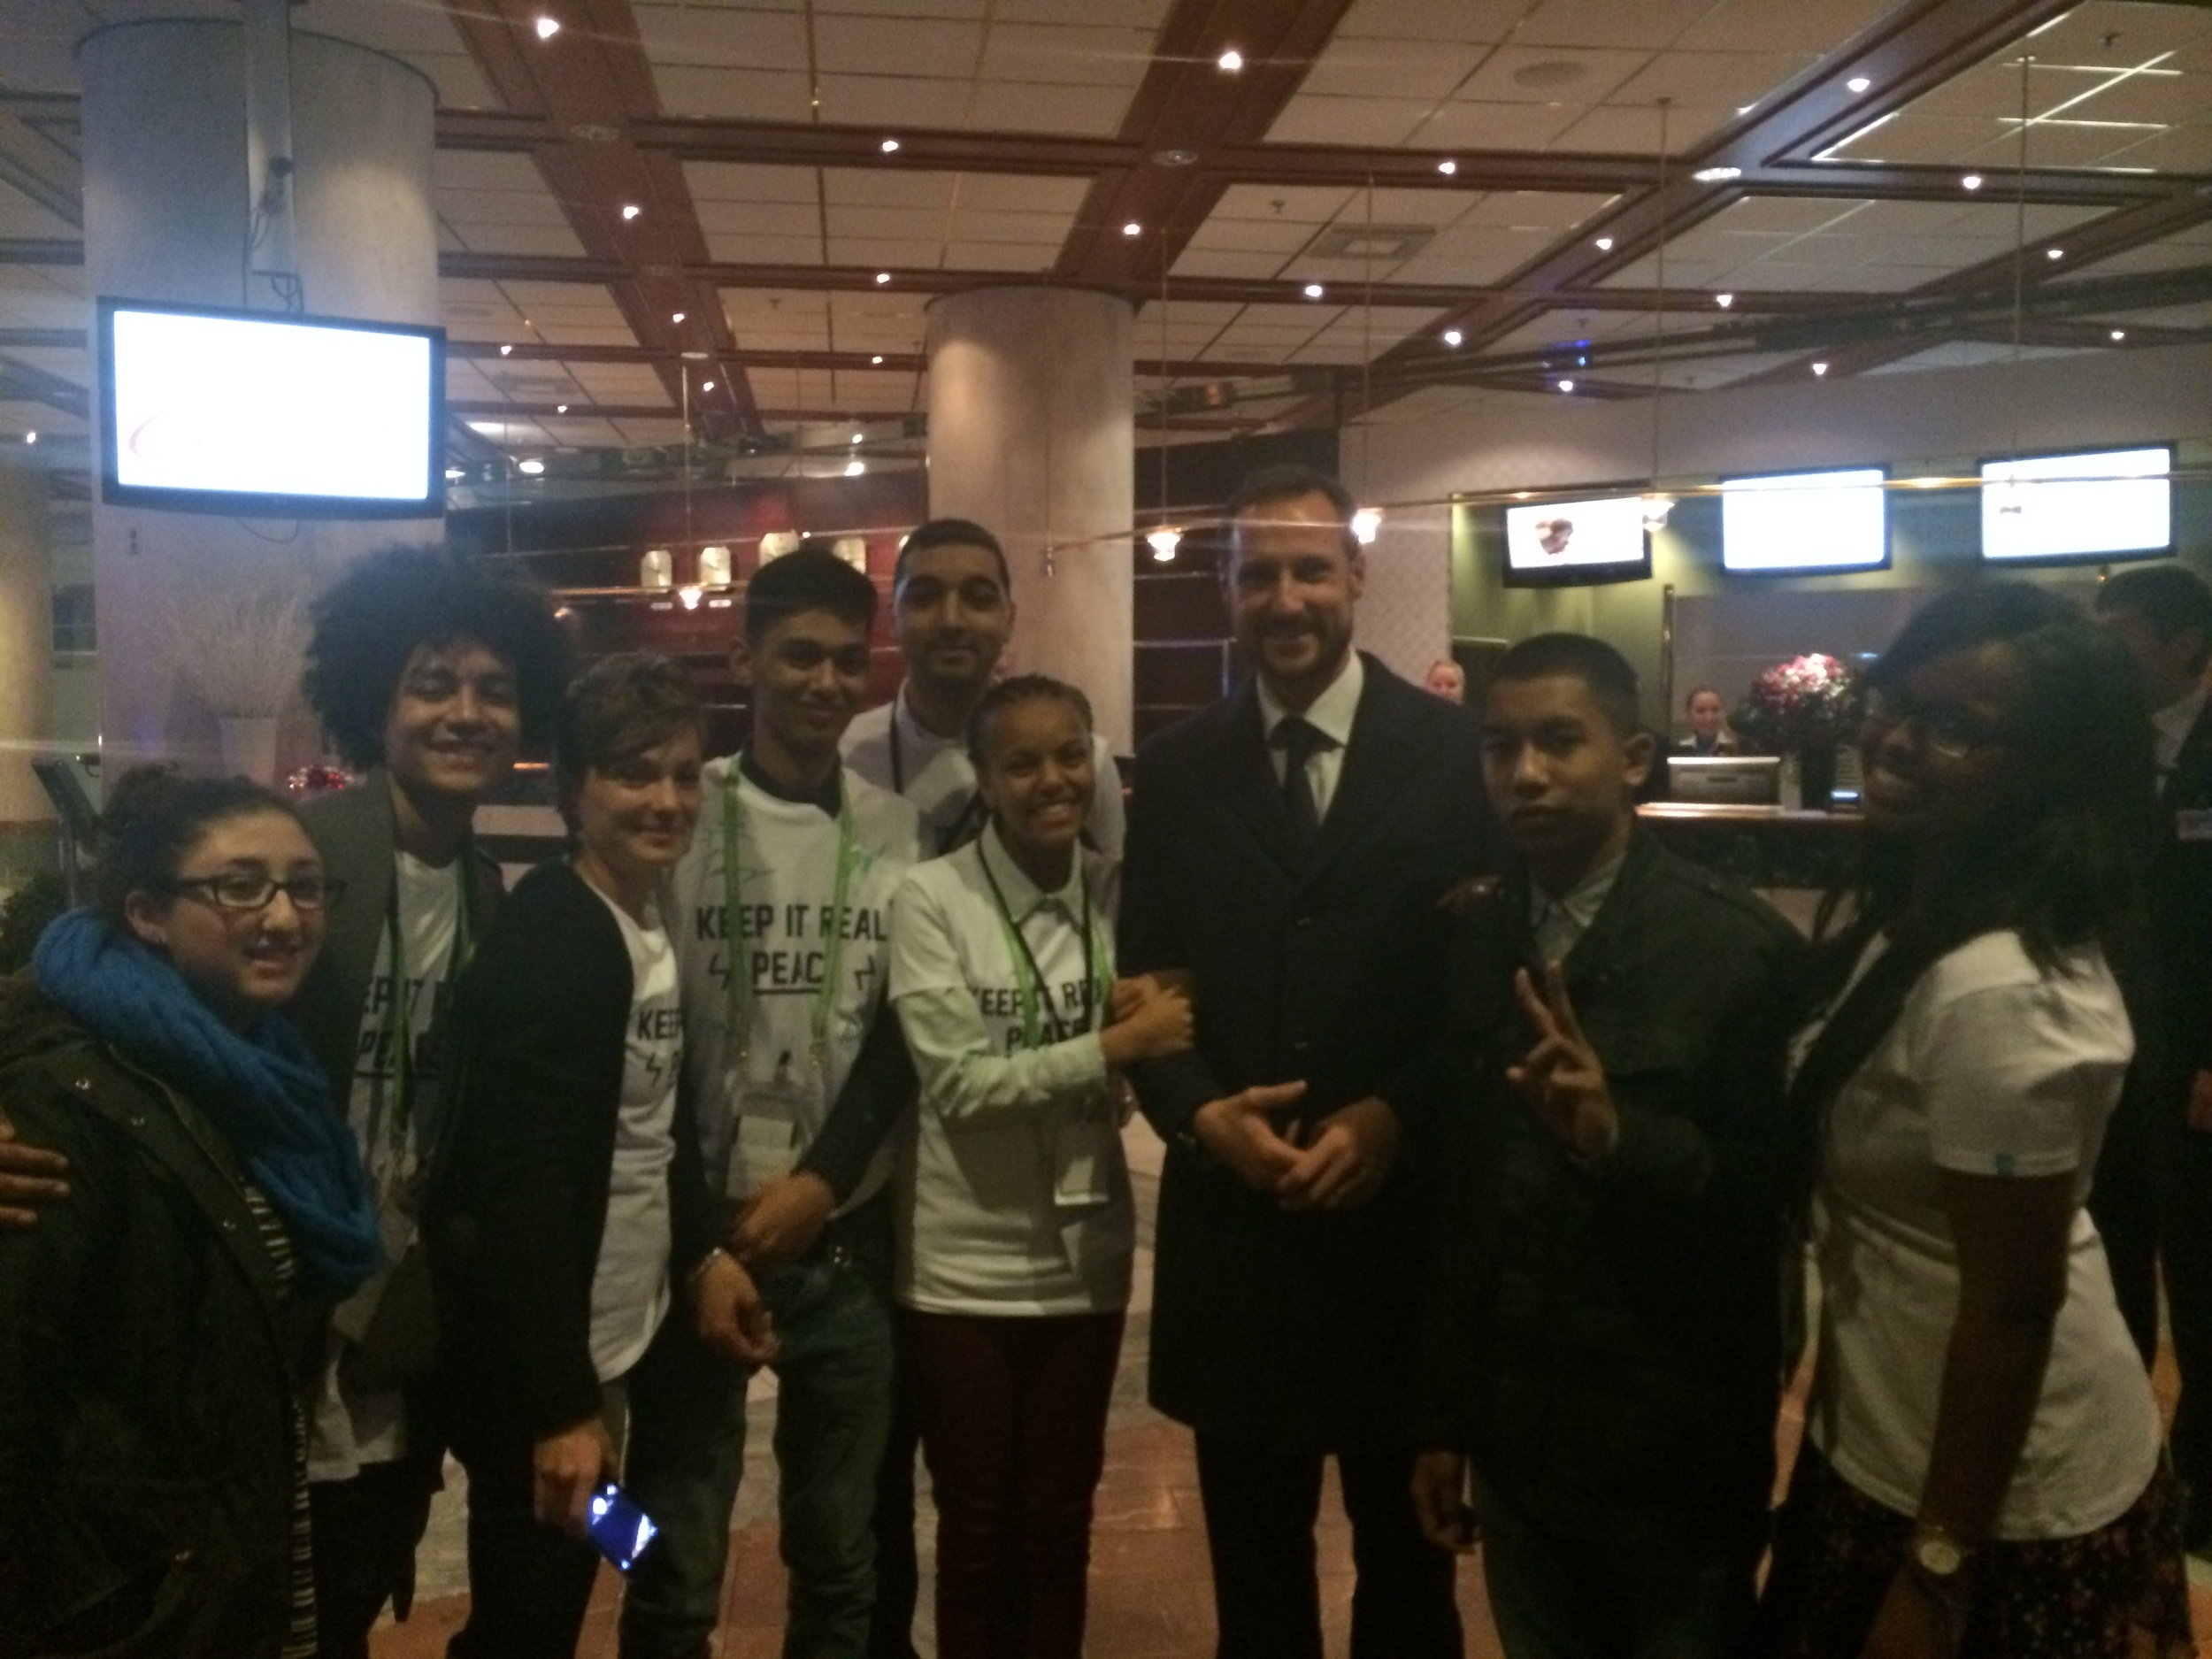 HRH Crown Prince Haakon of Norway kindly receives Keep it Real Young Leaders group after Nobel Peace Prize concert in Oslo